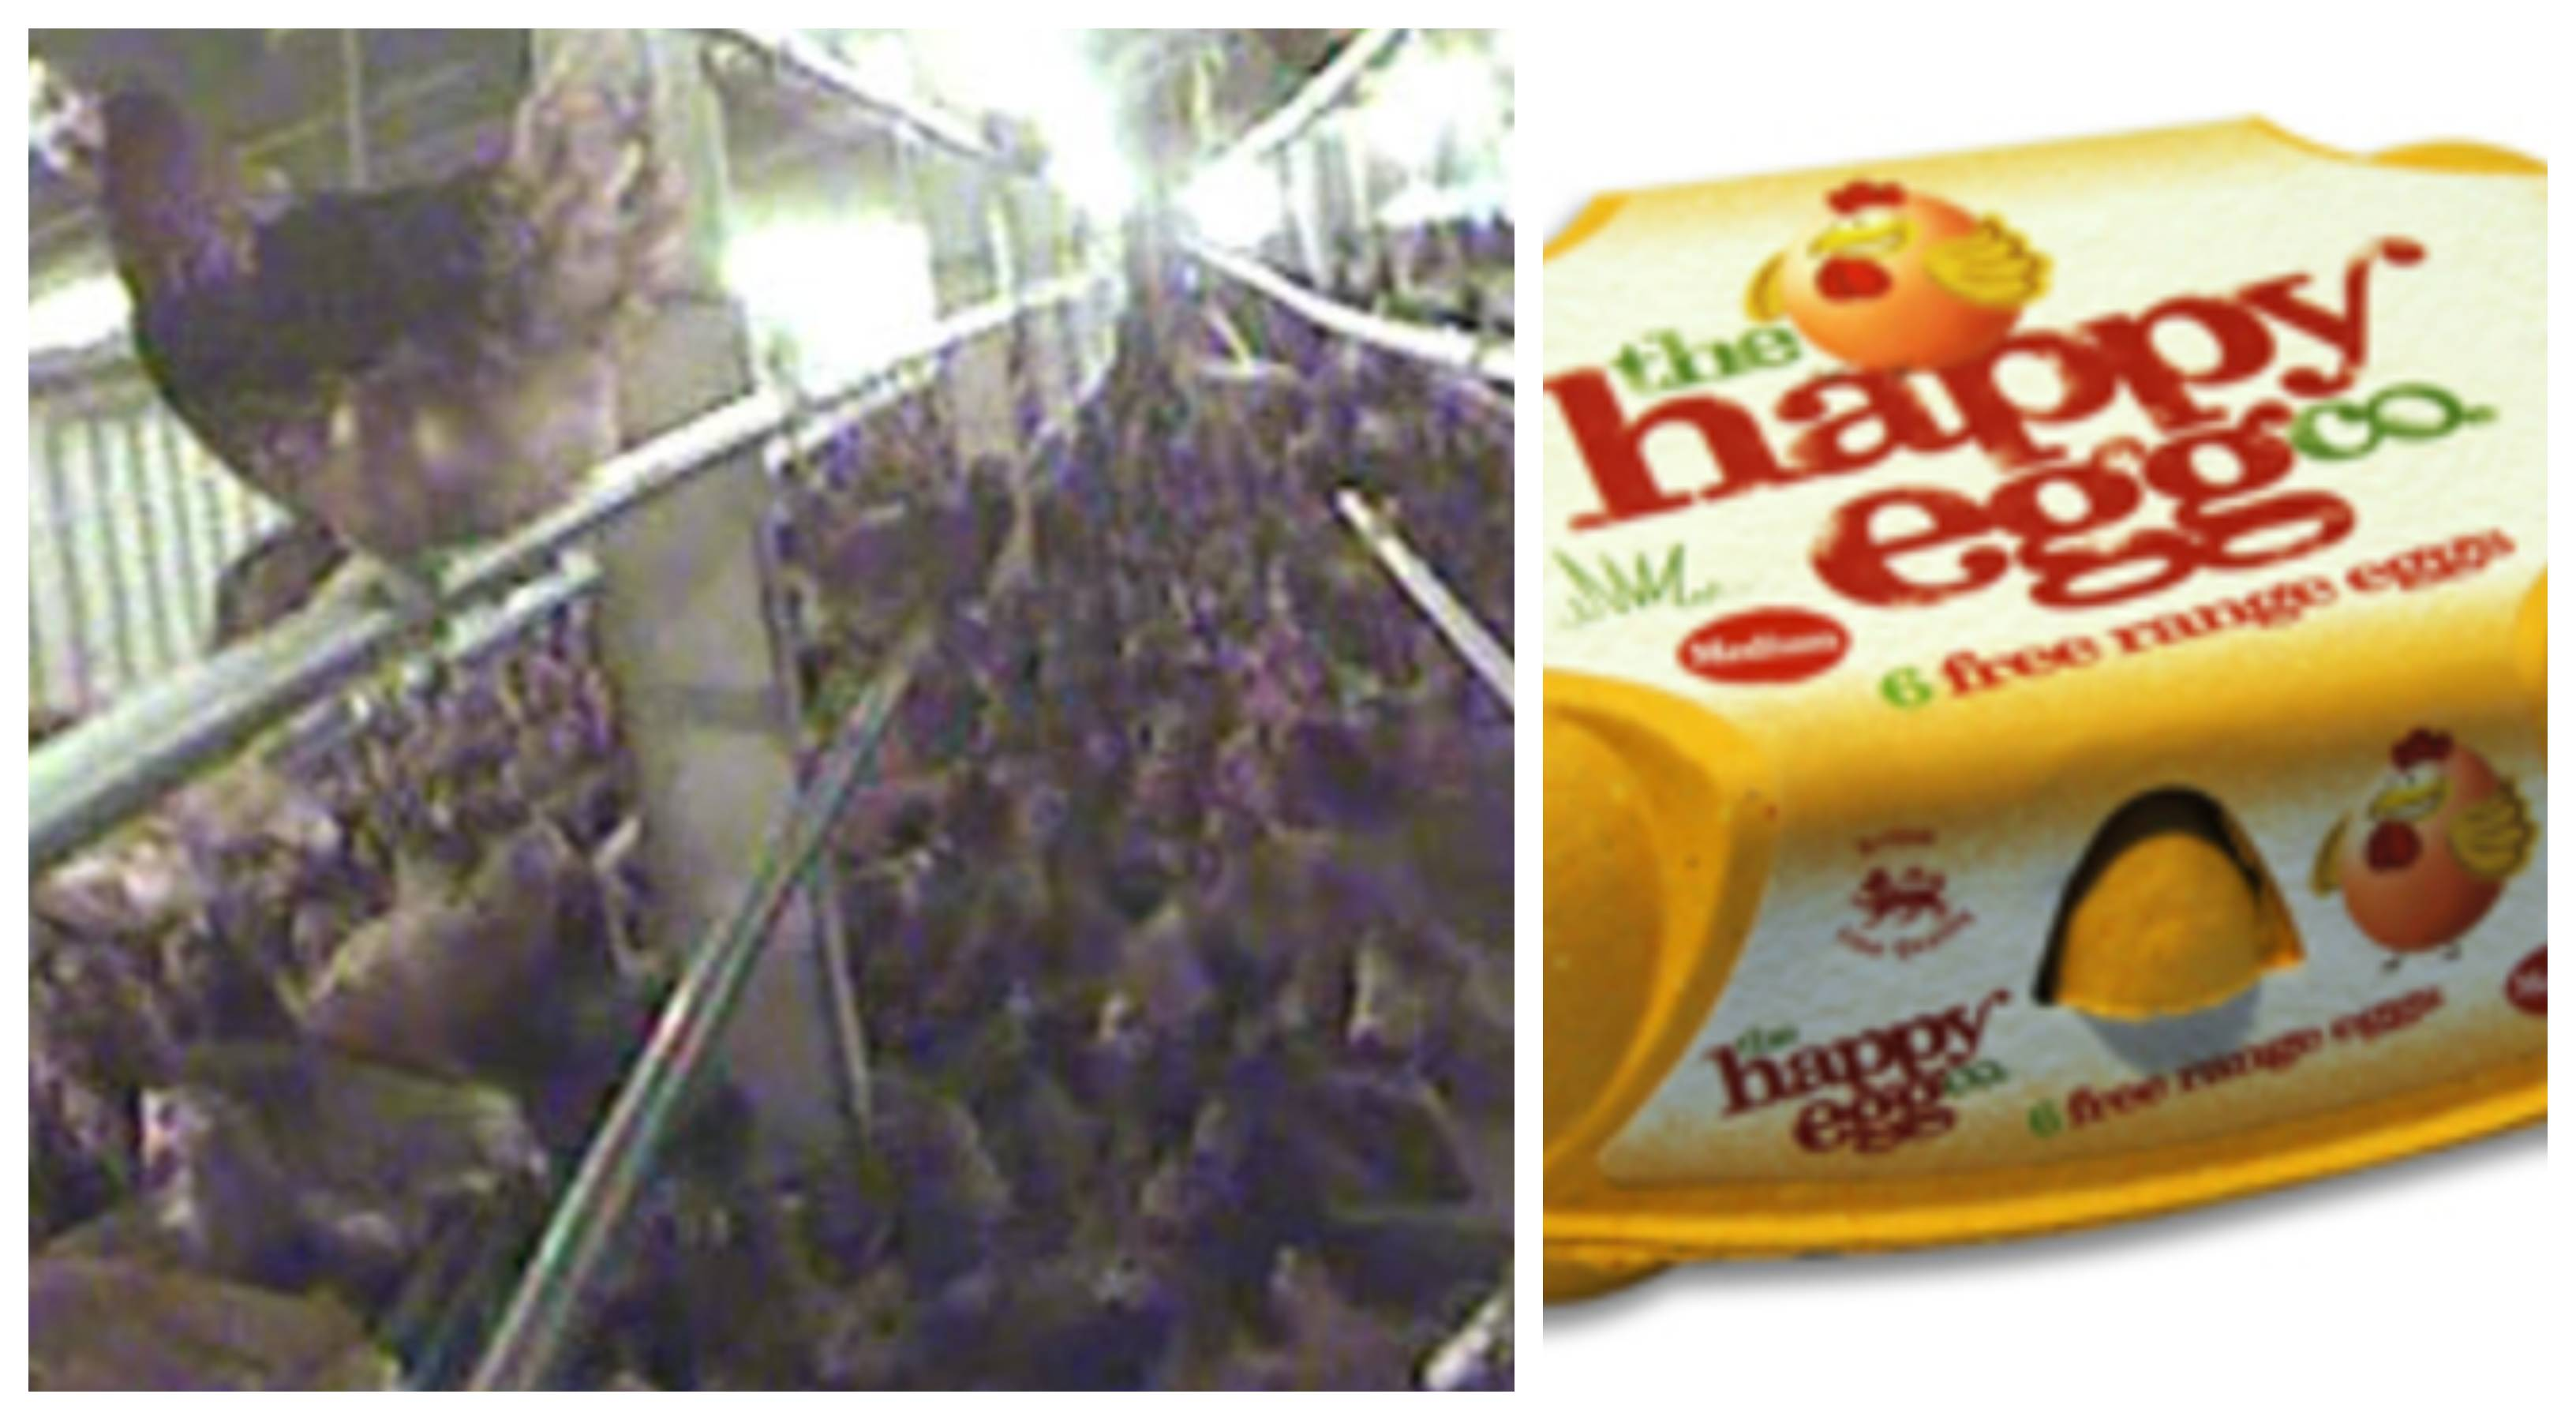 Undercover footage from the Happy Egg Co